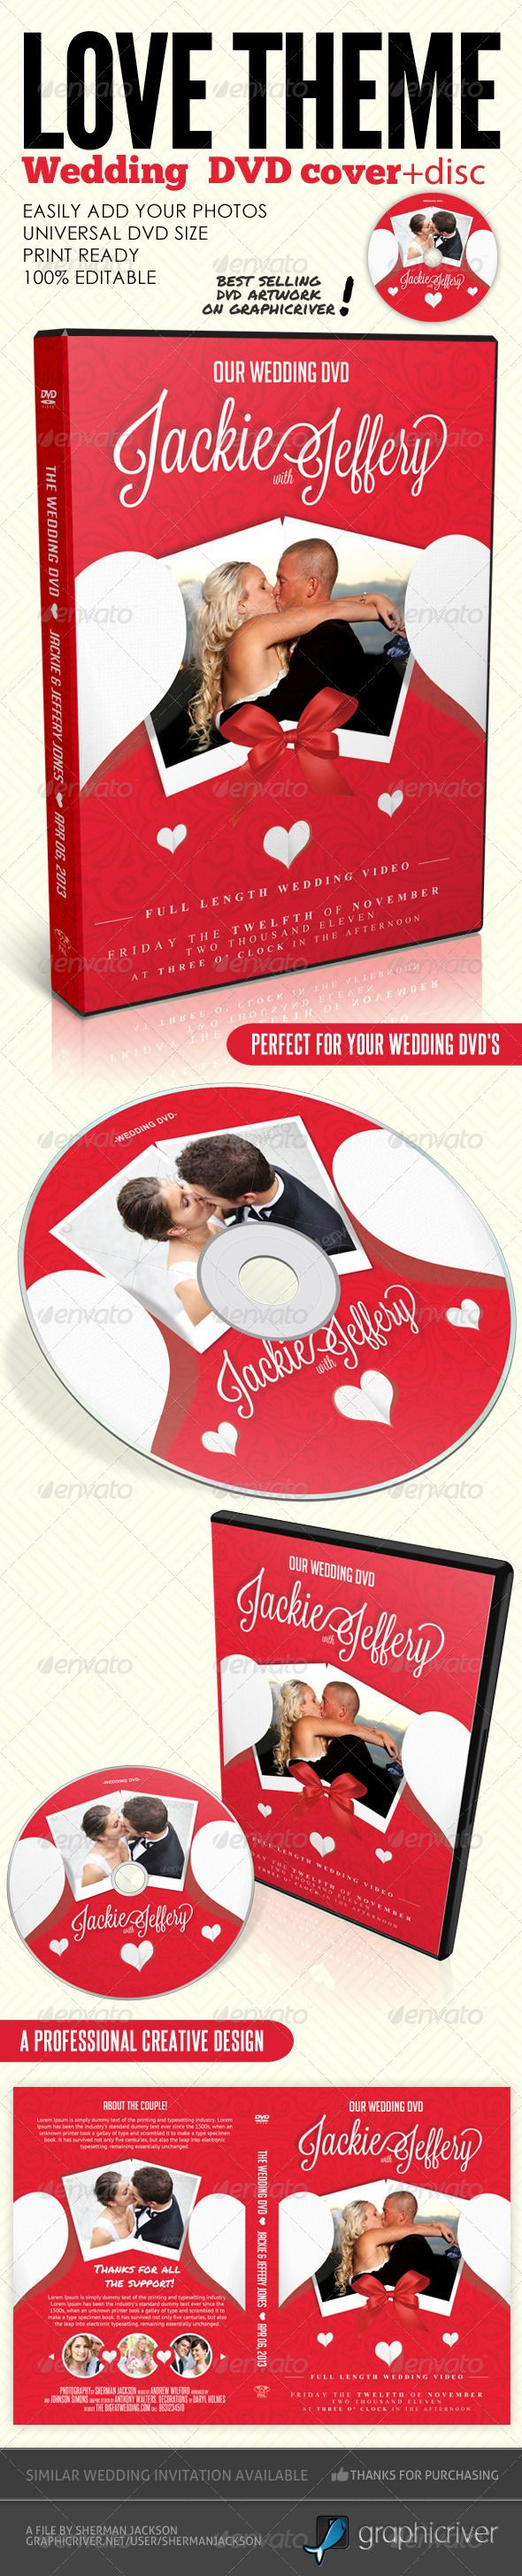 Cd box template download free vector art stock graphics amp images - Love Theme Wedding Dvd Covers Disc Label